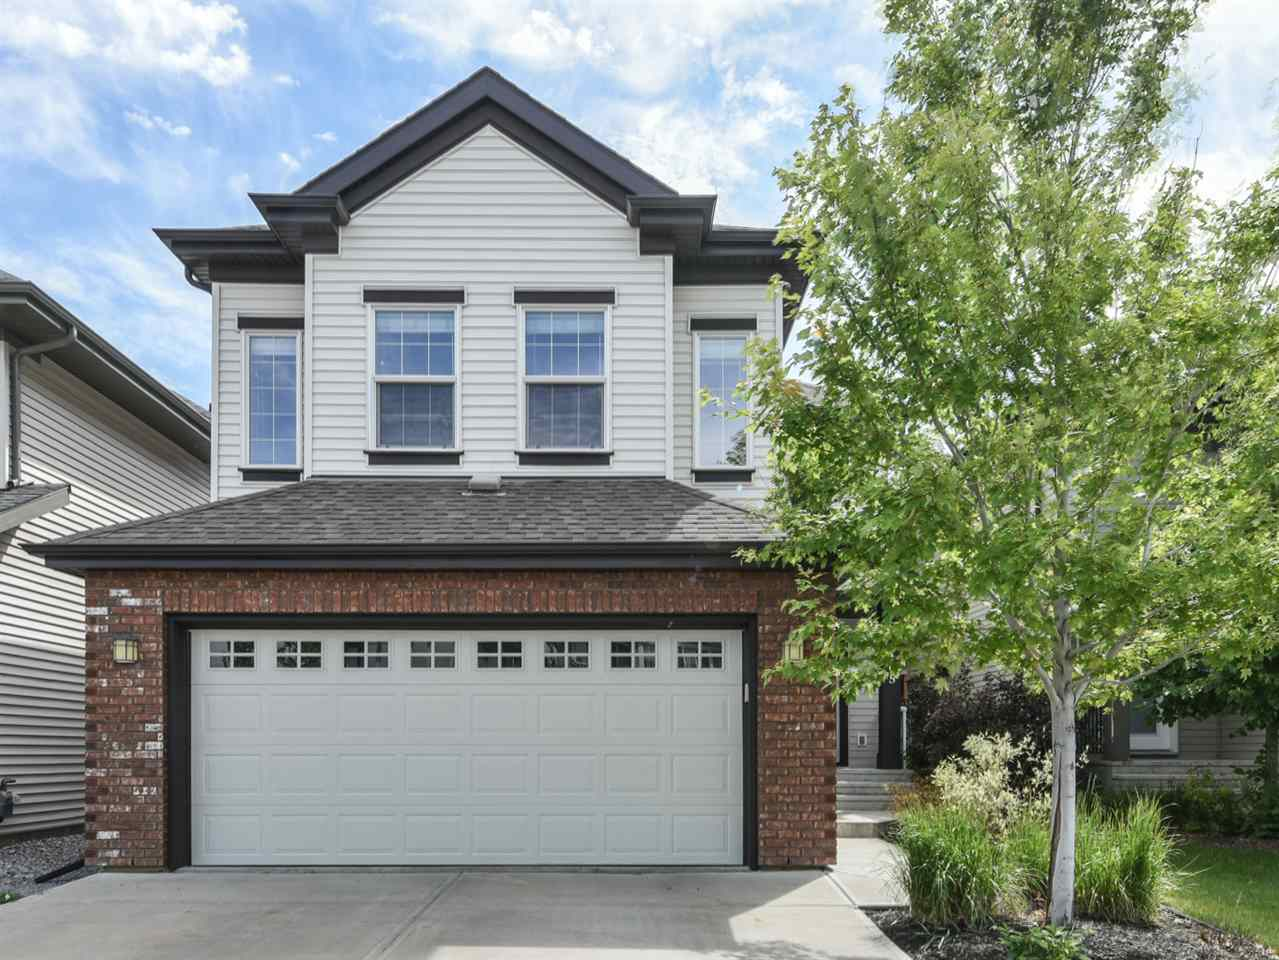 Main Photo: 1105 CHAHLEY Court in Edmonton: Zone 20 House for sale : MLS®# E4118607